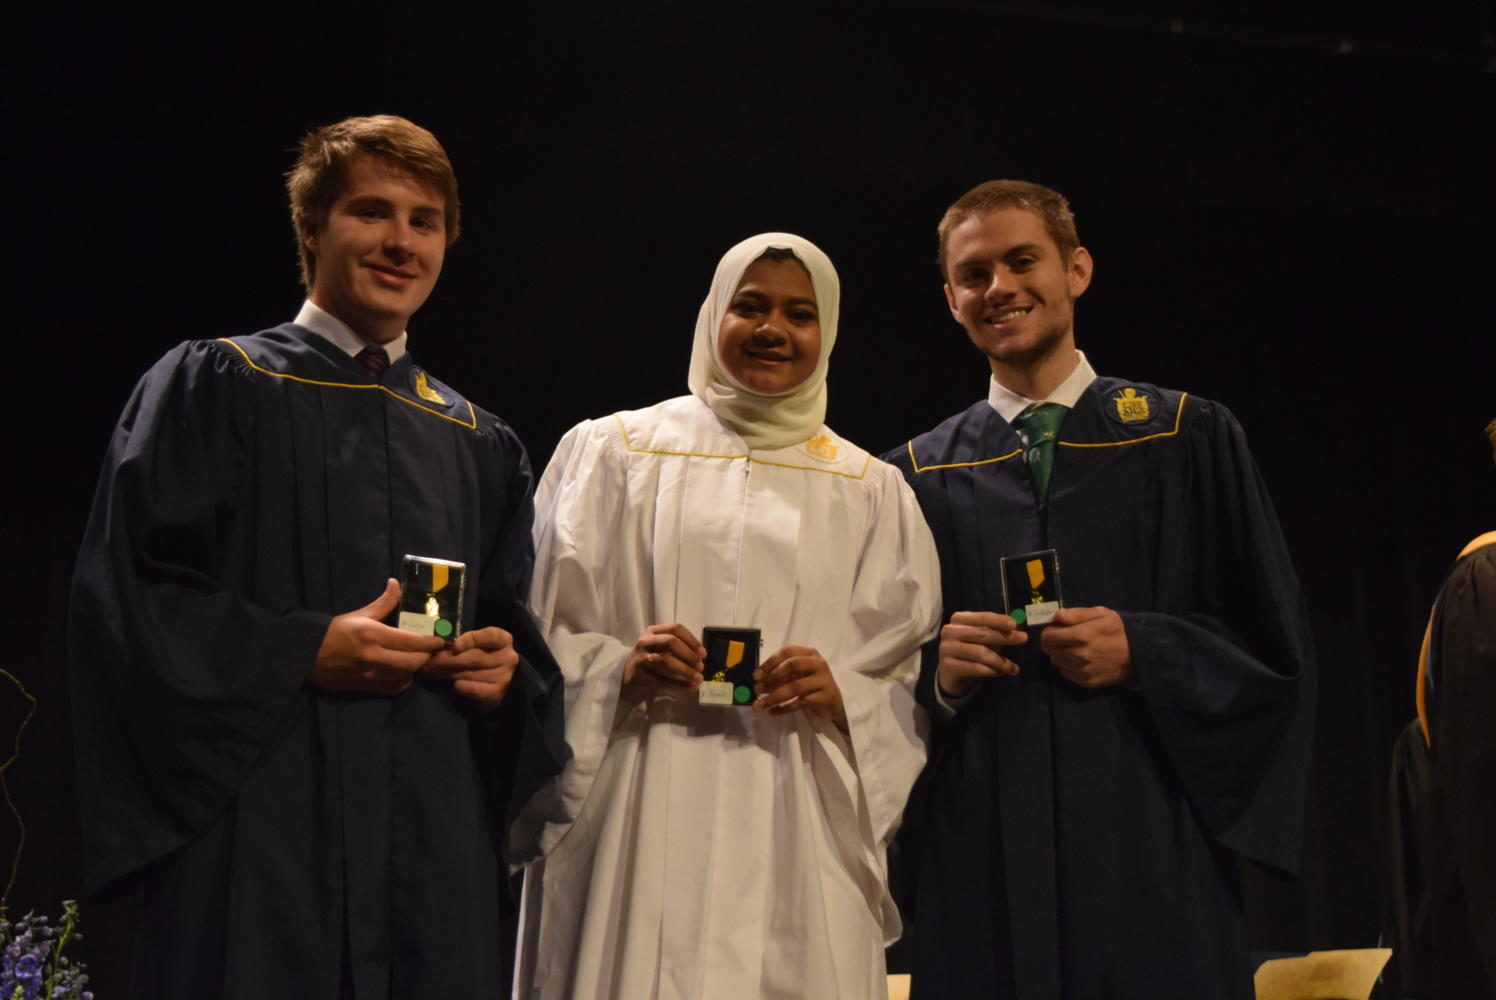 Mac+Cartier%2C+Mariha+Junaid%2C+and+Michael+DeMatteo+receive+honor+medals+for+Forensics+and+Debate+for+placing+at+the+VHSL+State+level.+